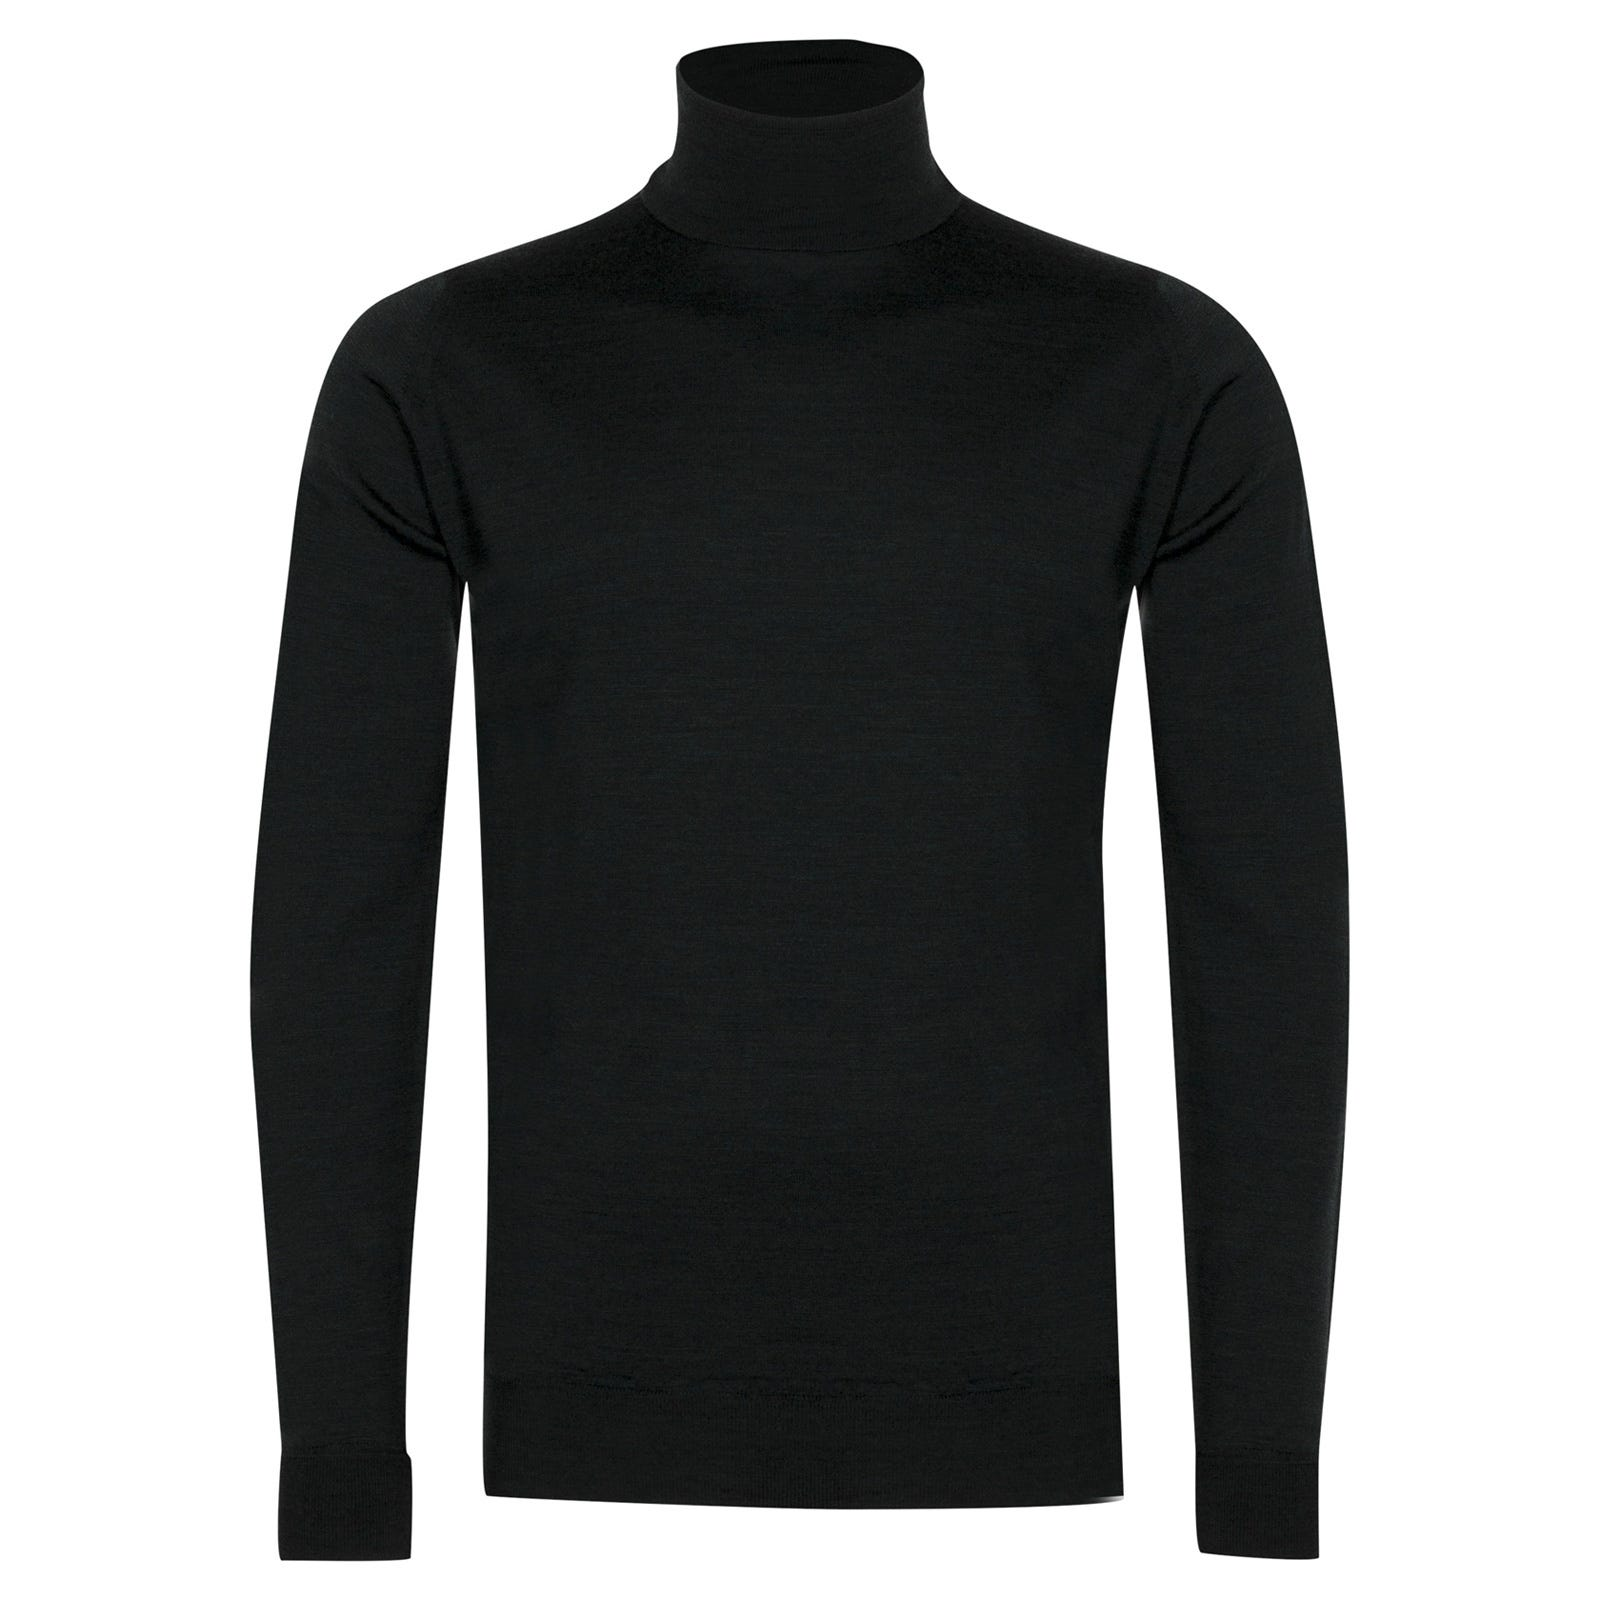 John Smedley richards Merino Wool Pullover in Racing Green-XL